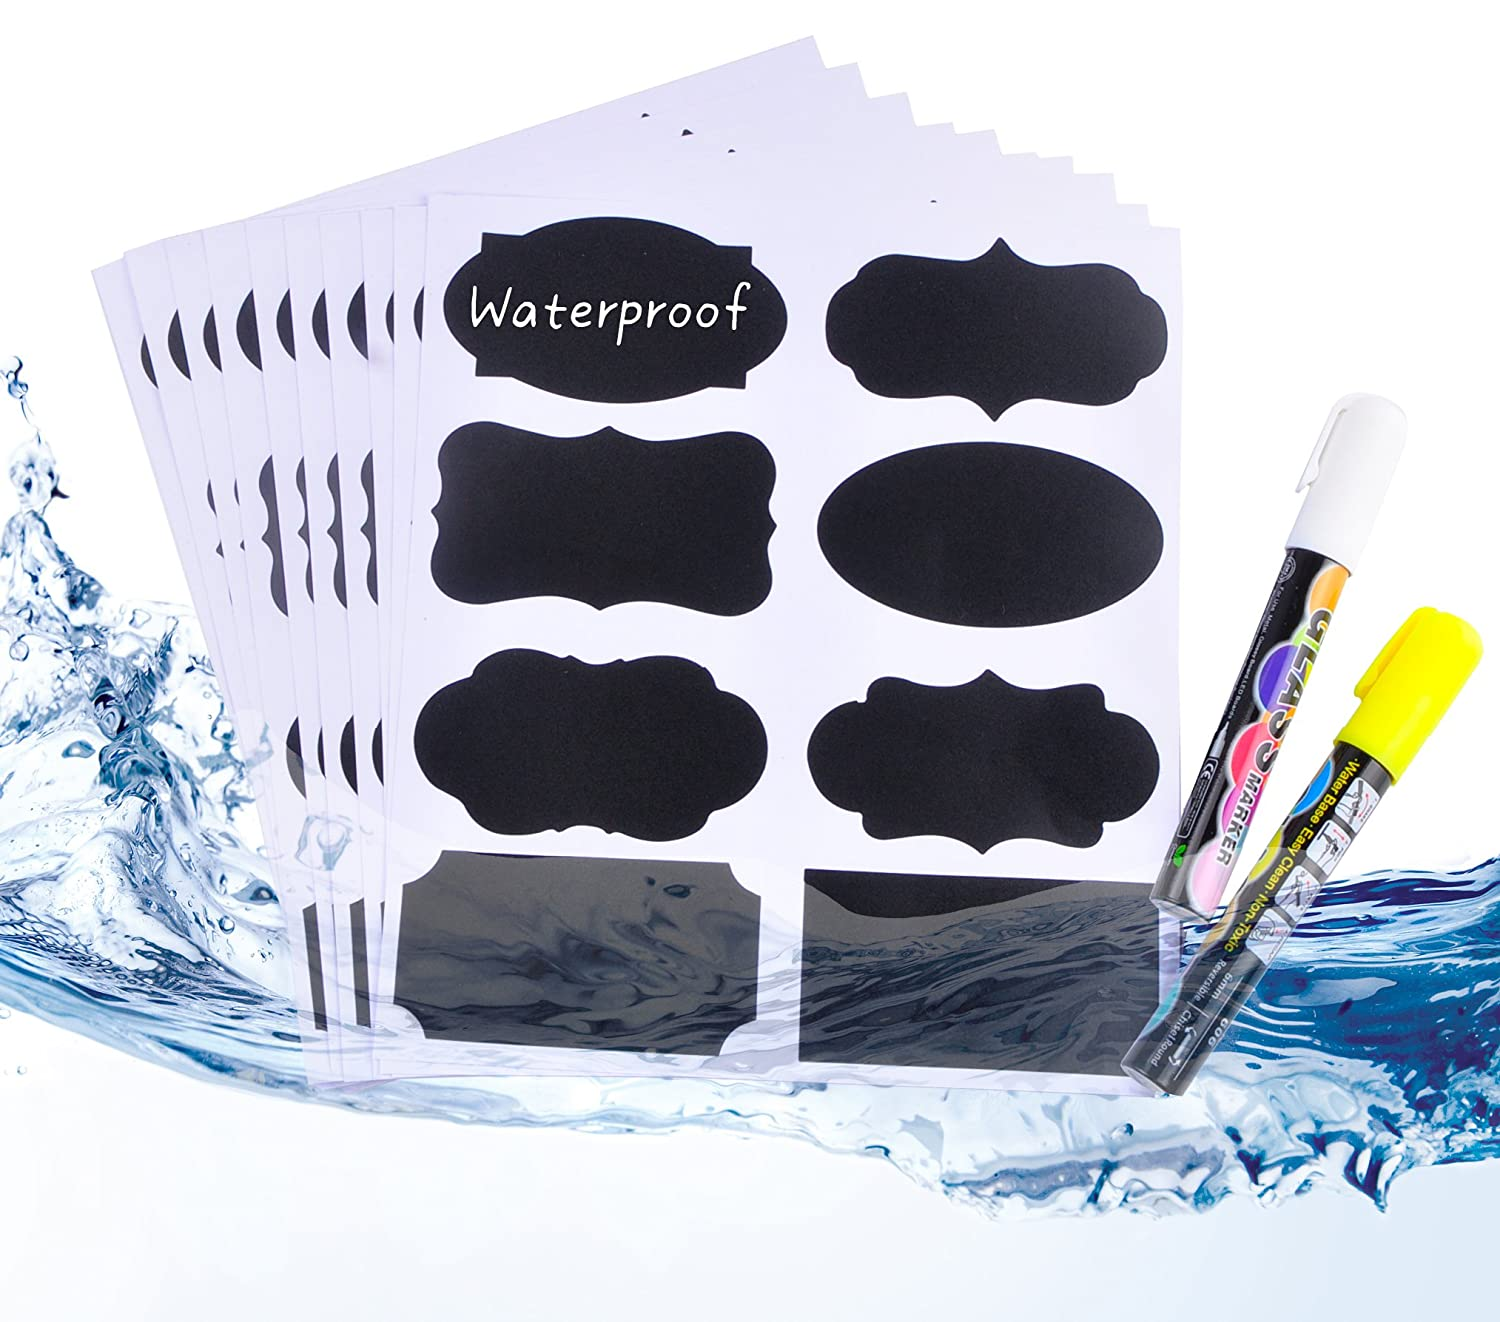 Chalkboard Labels, 112pcs Waterproof/Reusable Blackboard Sticker Kit For Kitchen Organize, With 2 Erasable White and Yellow Chalk Pens To Decorate Your Party/Office Mason Jars and Kilner Bottles Sunshine